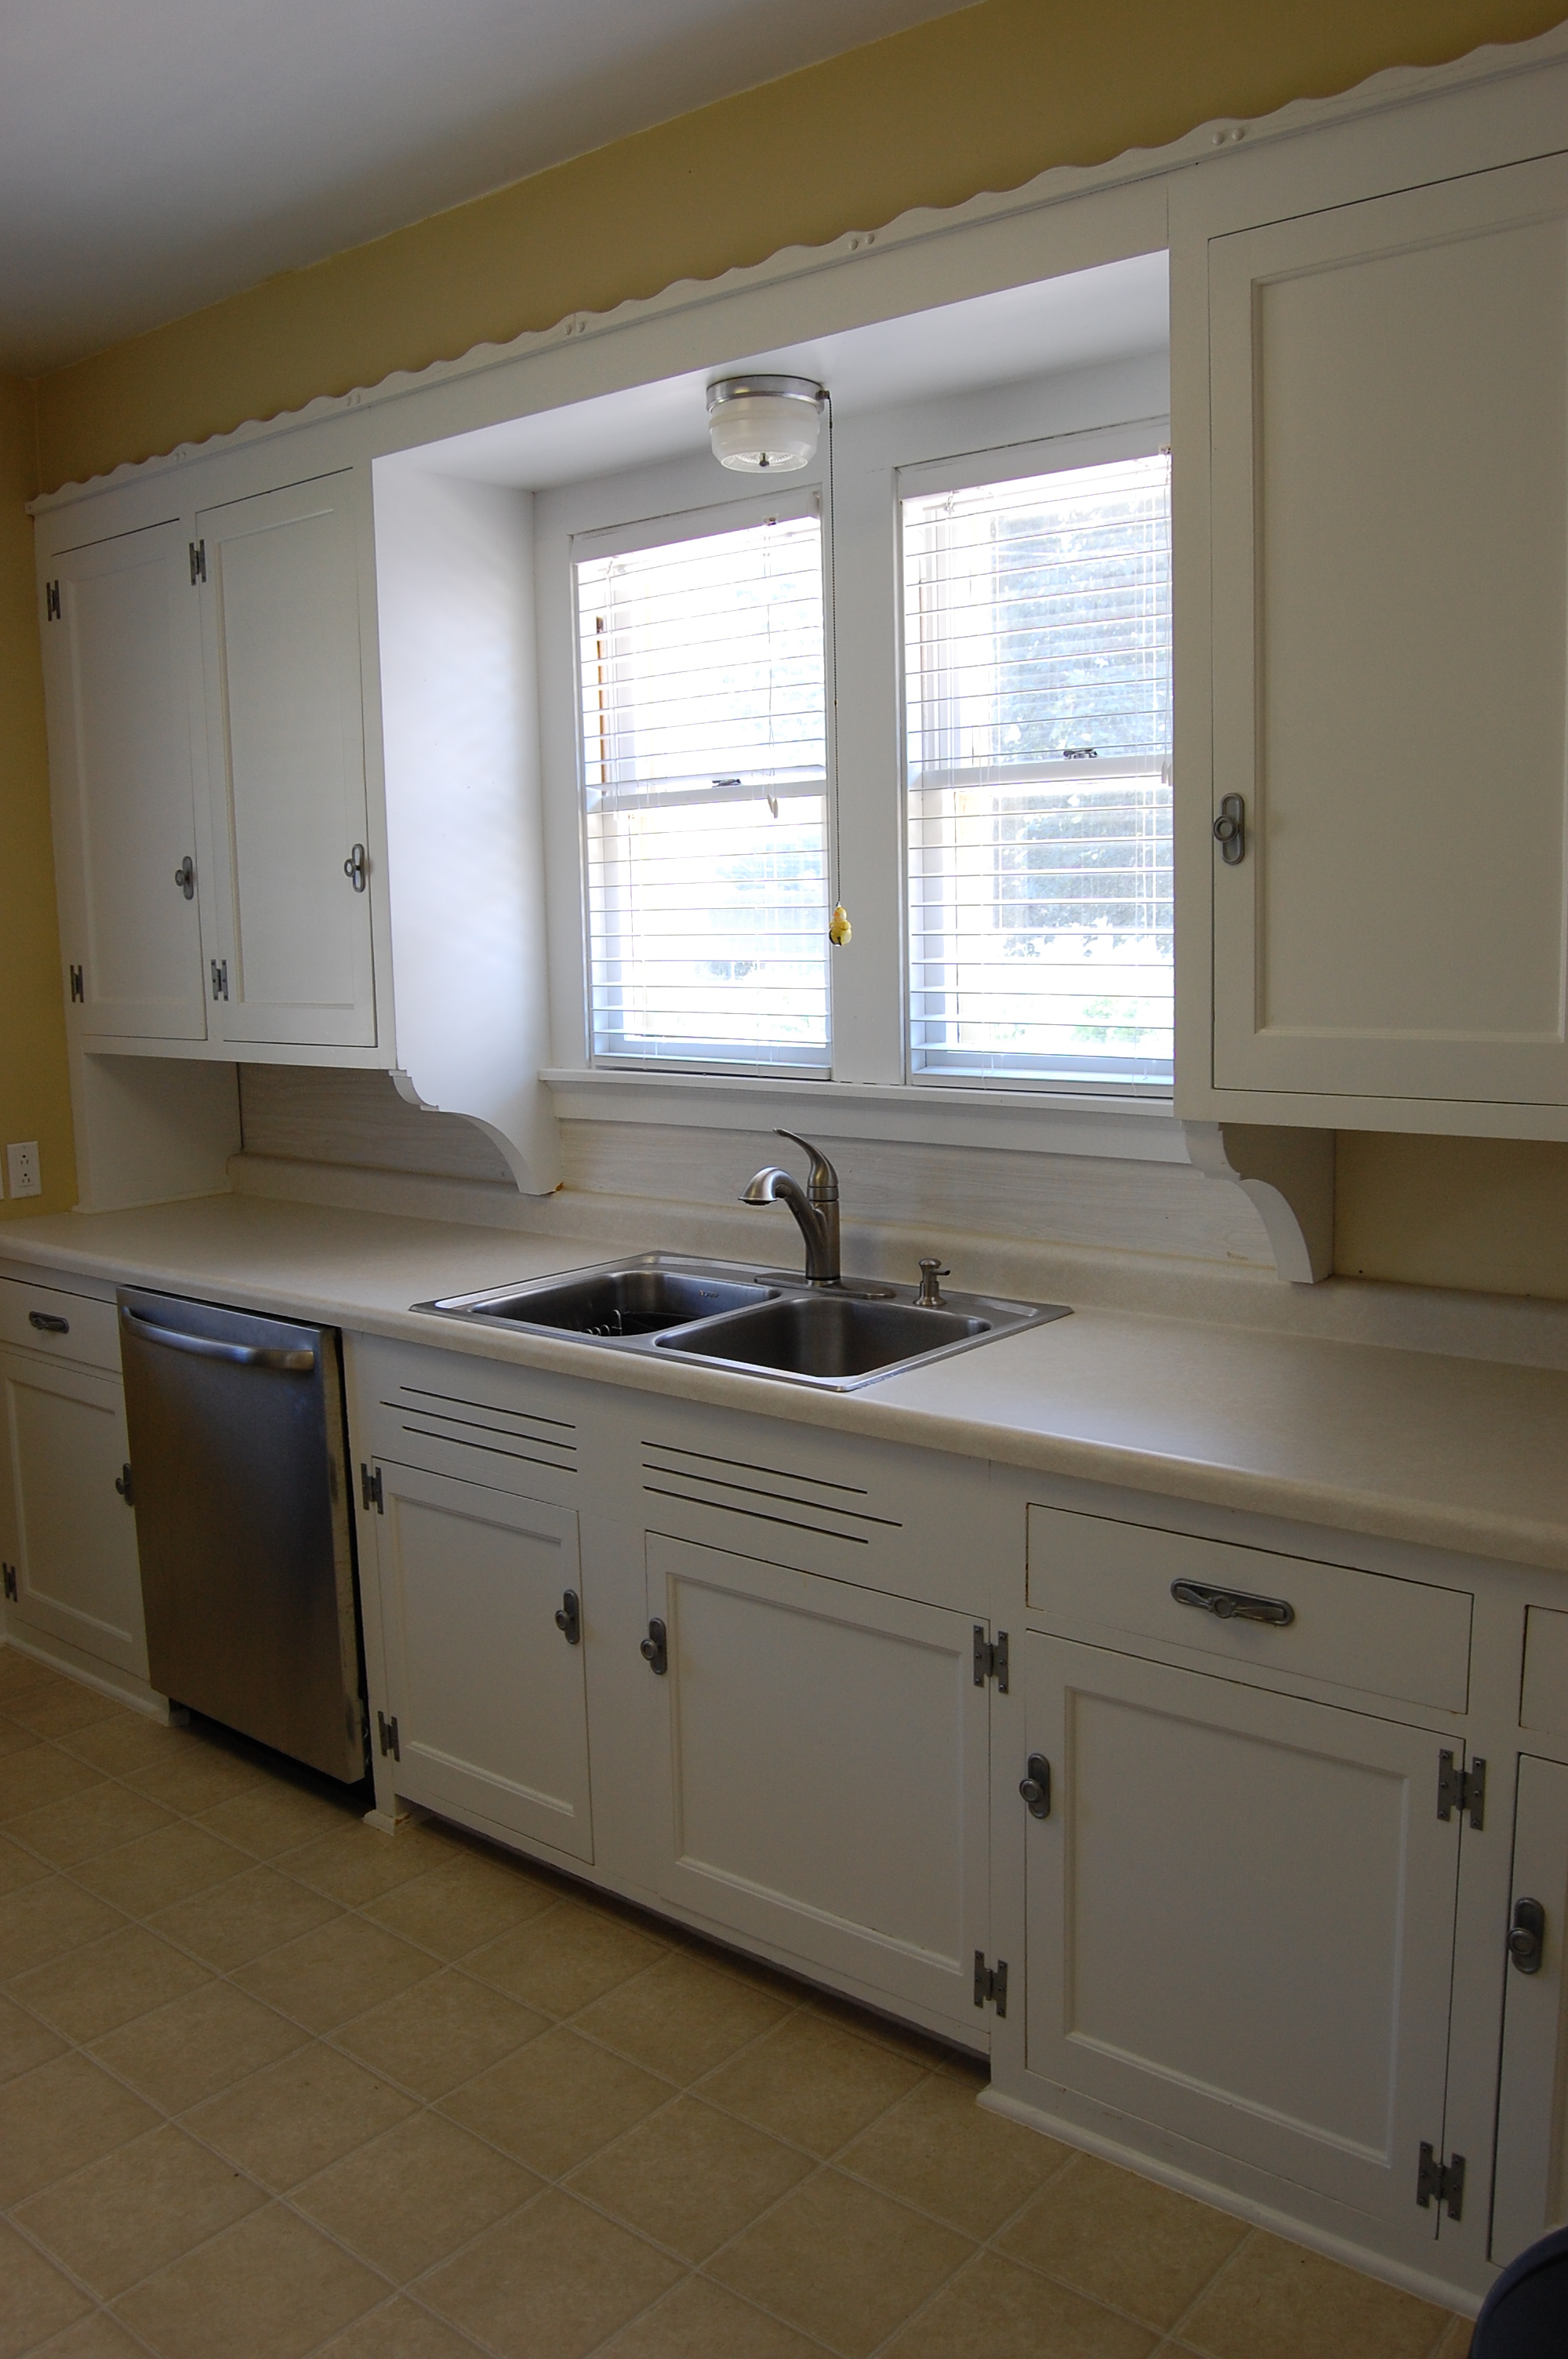 How to painting kitchen cabinets for Best paint for kitchen cabinets